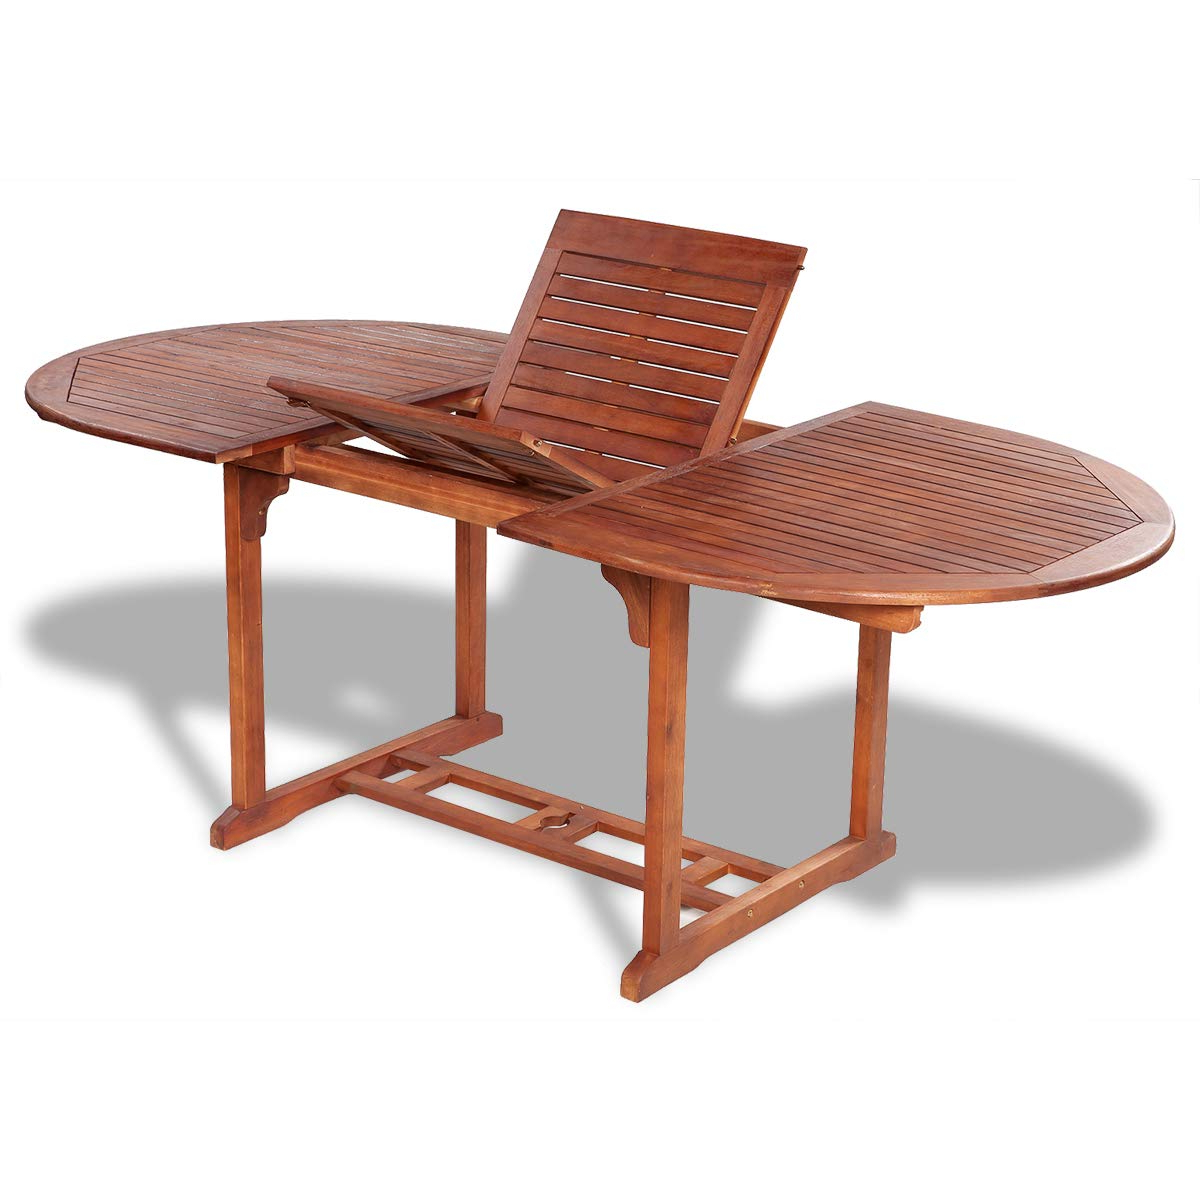 Amazon: Vidaxl Solid Acacia Wood Outdoor Dining Table In Most Current Unique Acacia Wood Dining Tables (View 1 of 25)